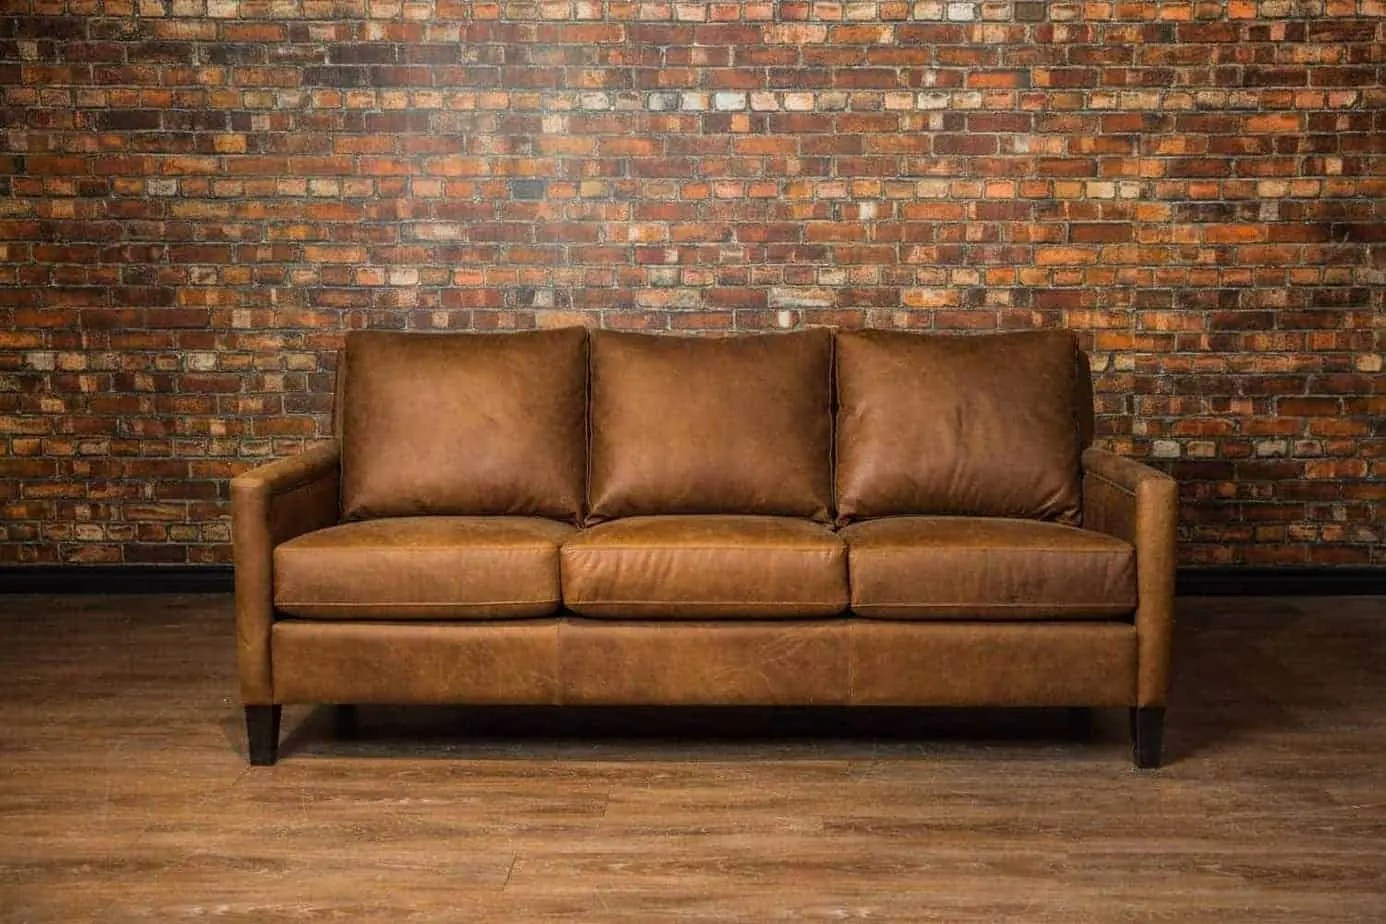 Leather Couch Canada The Ranchero Leather Sofa Canada 39s Boss Leather Sofas